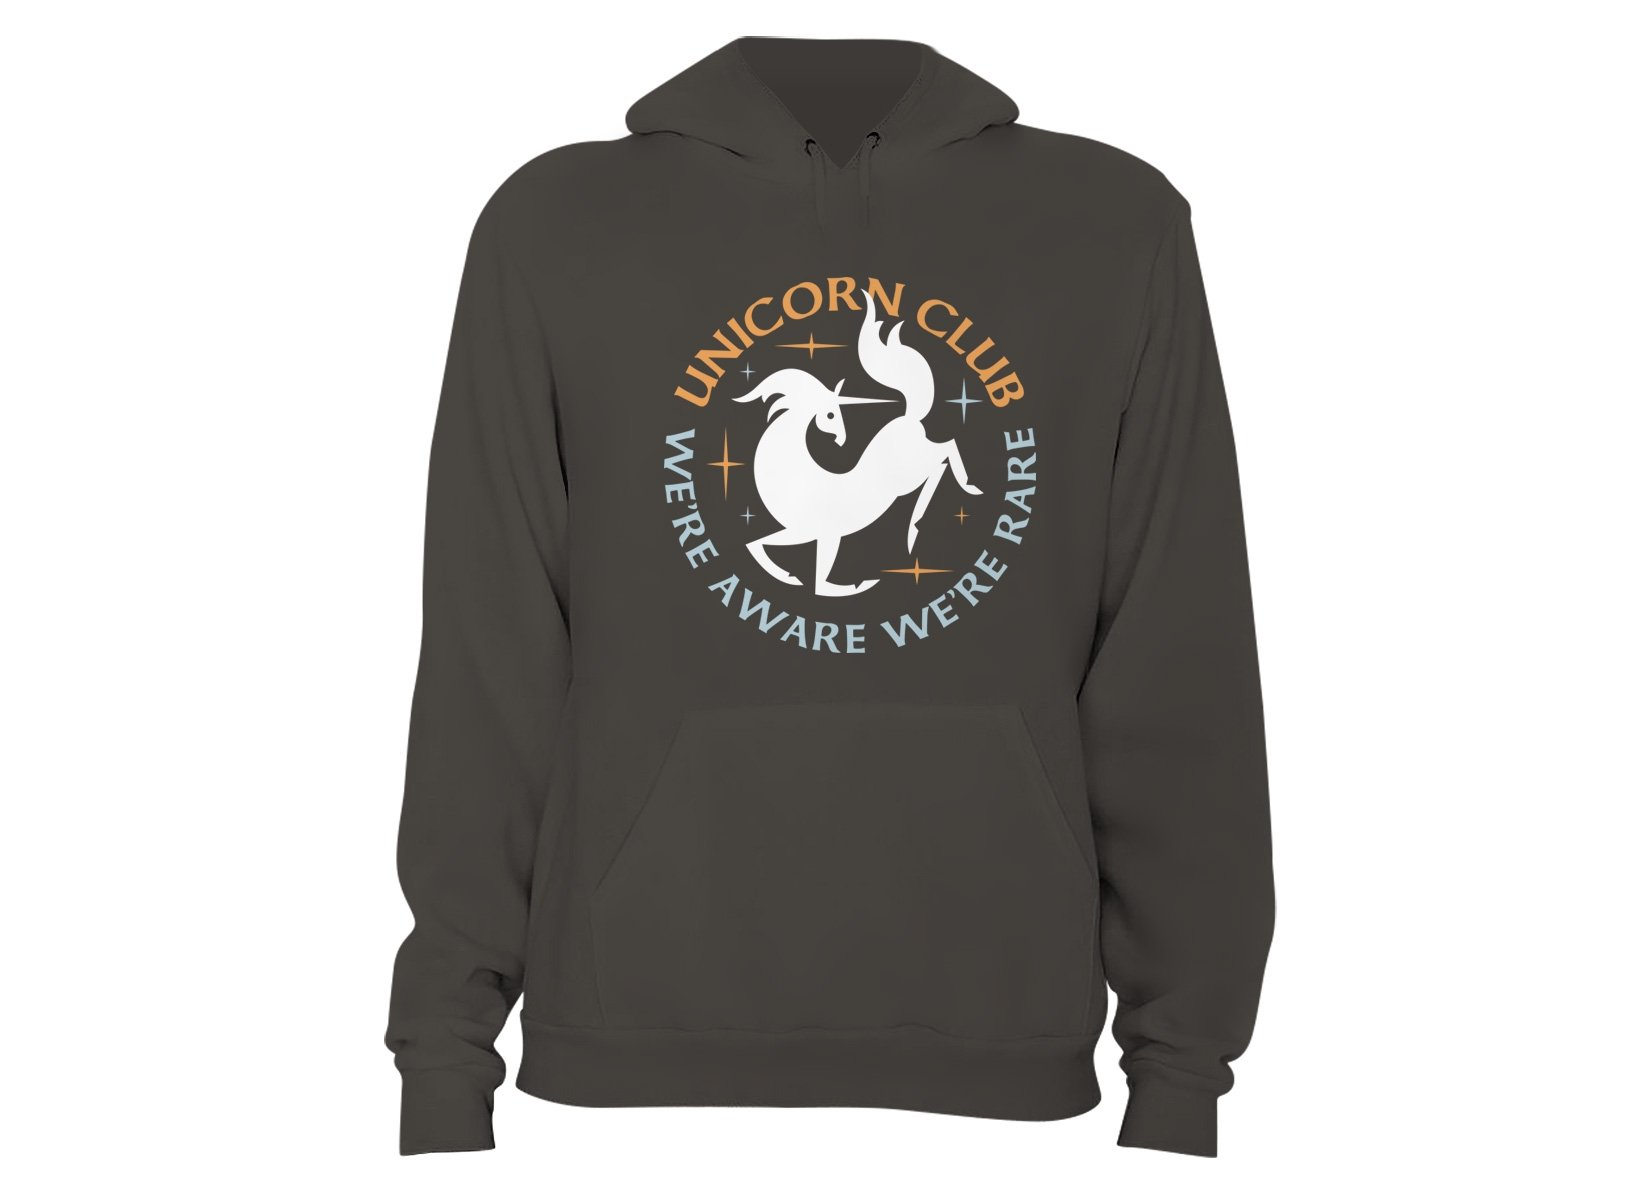 Unicorn Club on Hoodie